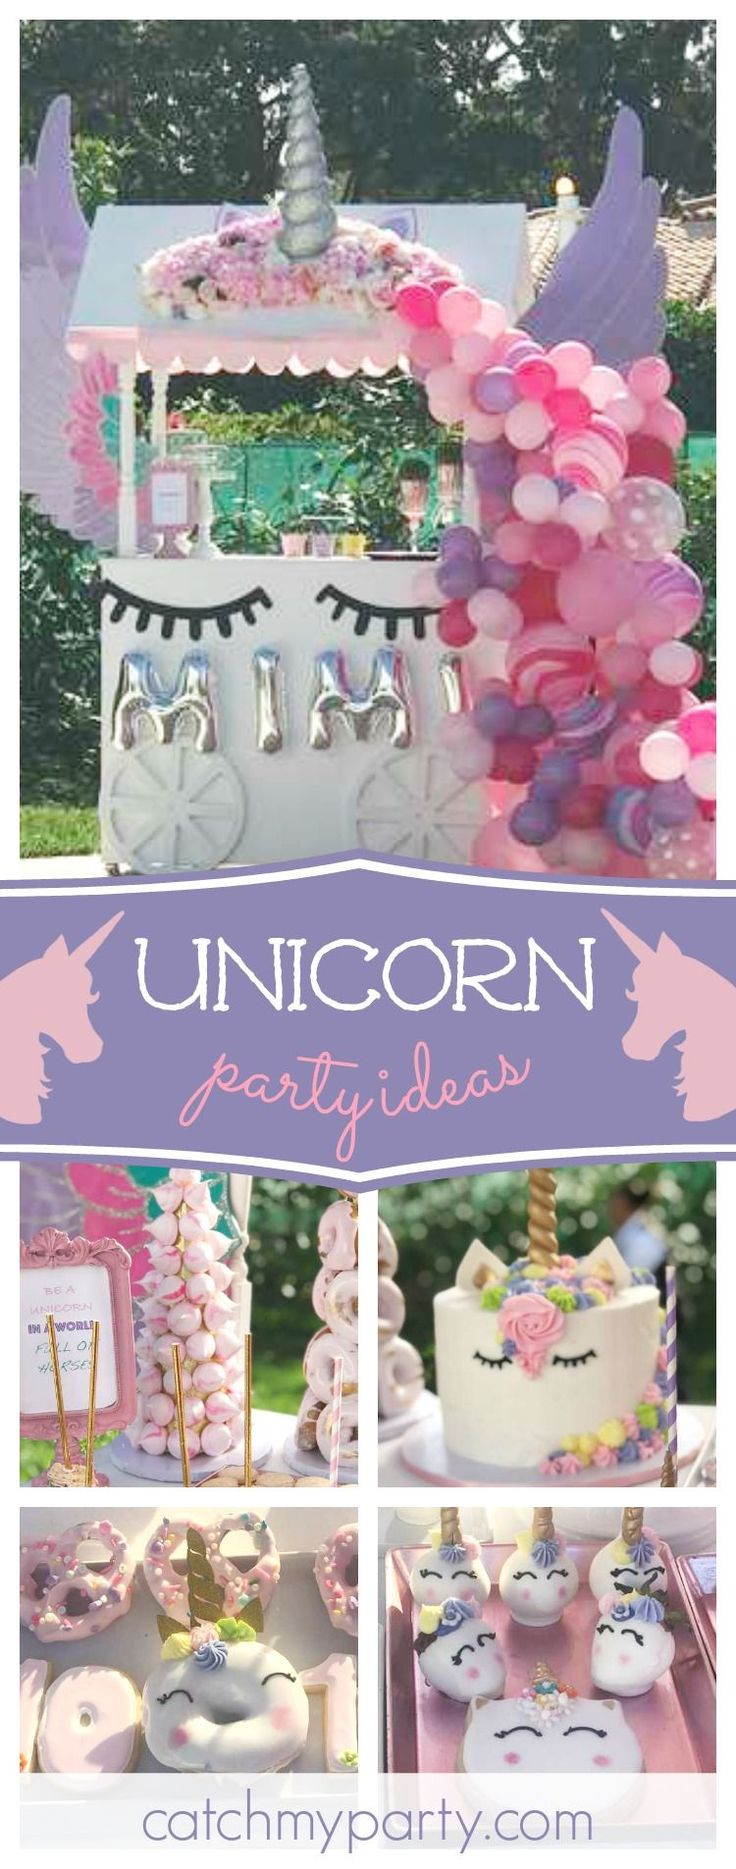 Take a look at this wonderful Unicorn birthday party! The dessert table cart and balloon garland is amazing!! See more party ideas and share yours at CatchMyParty.com #partyideas #catchmyparty #unicorn #garden